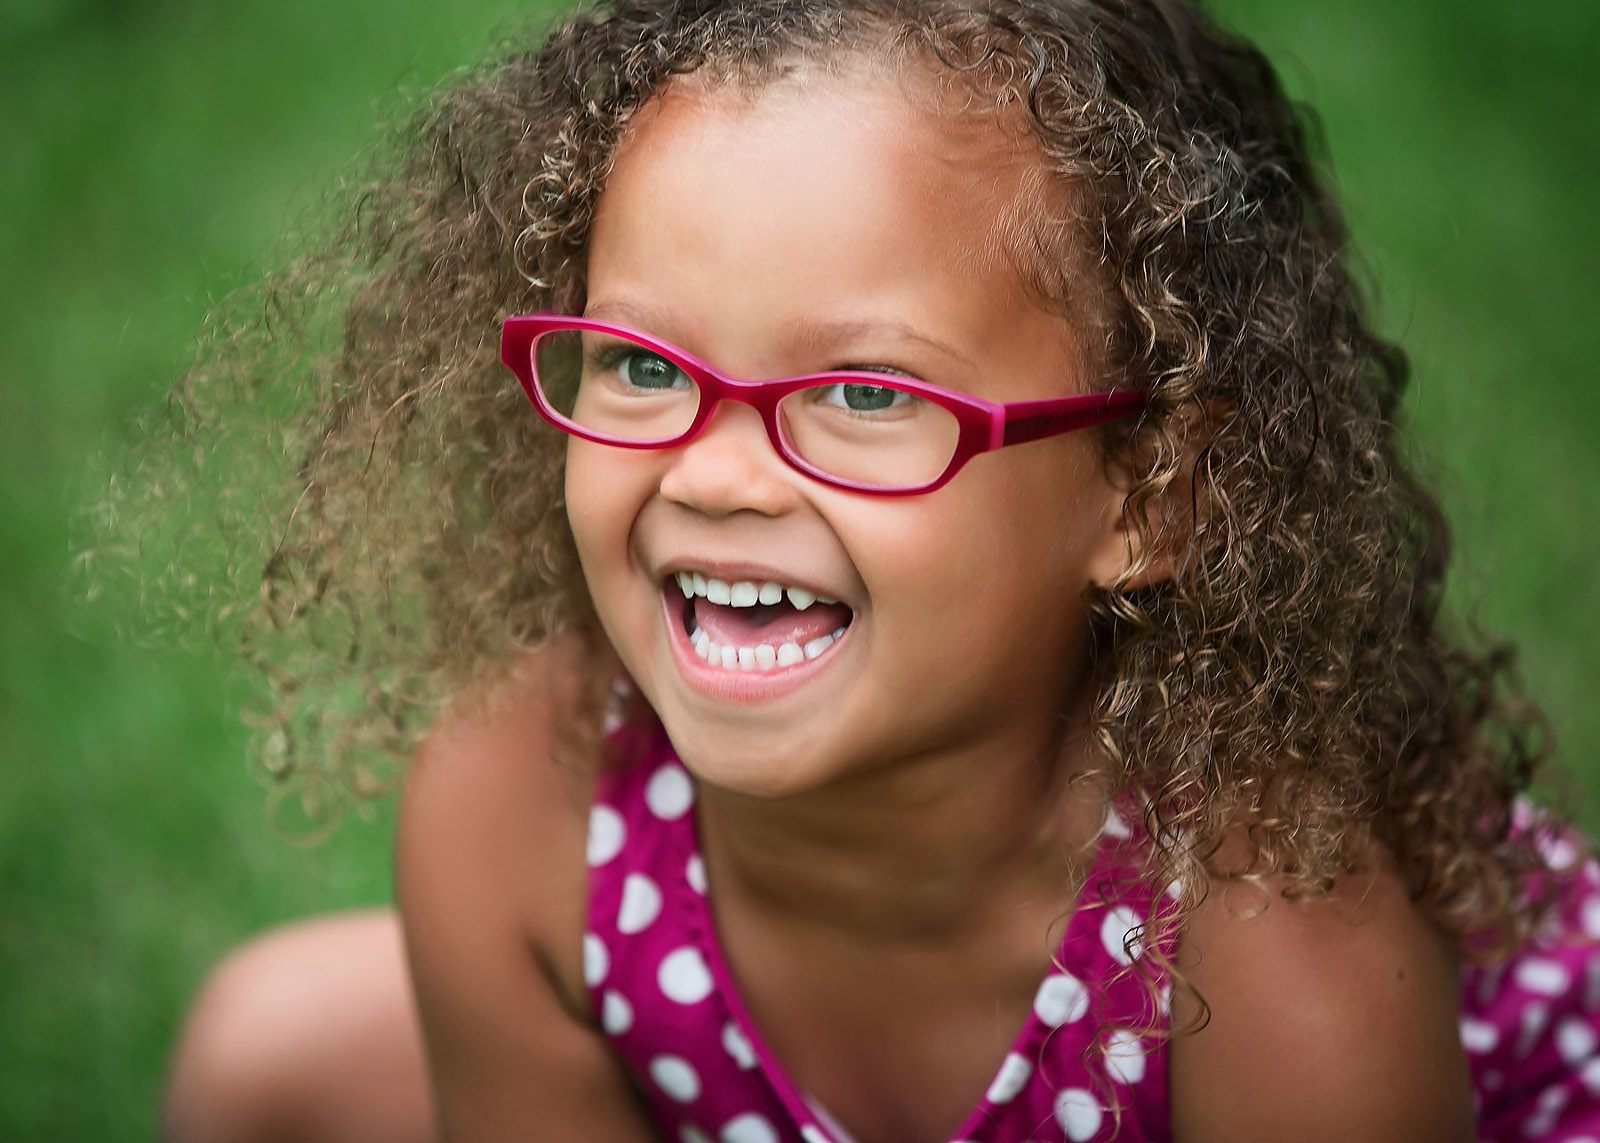 Girl In Red Glasses With Curly Hair Smiling Games For Happy